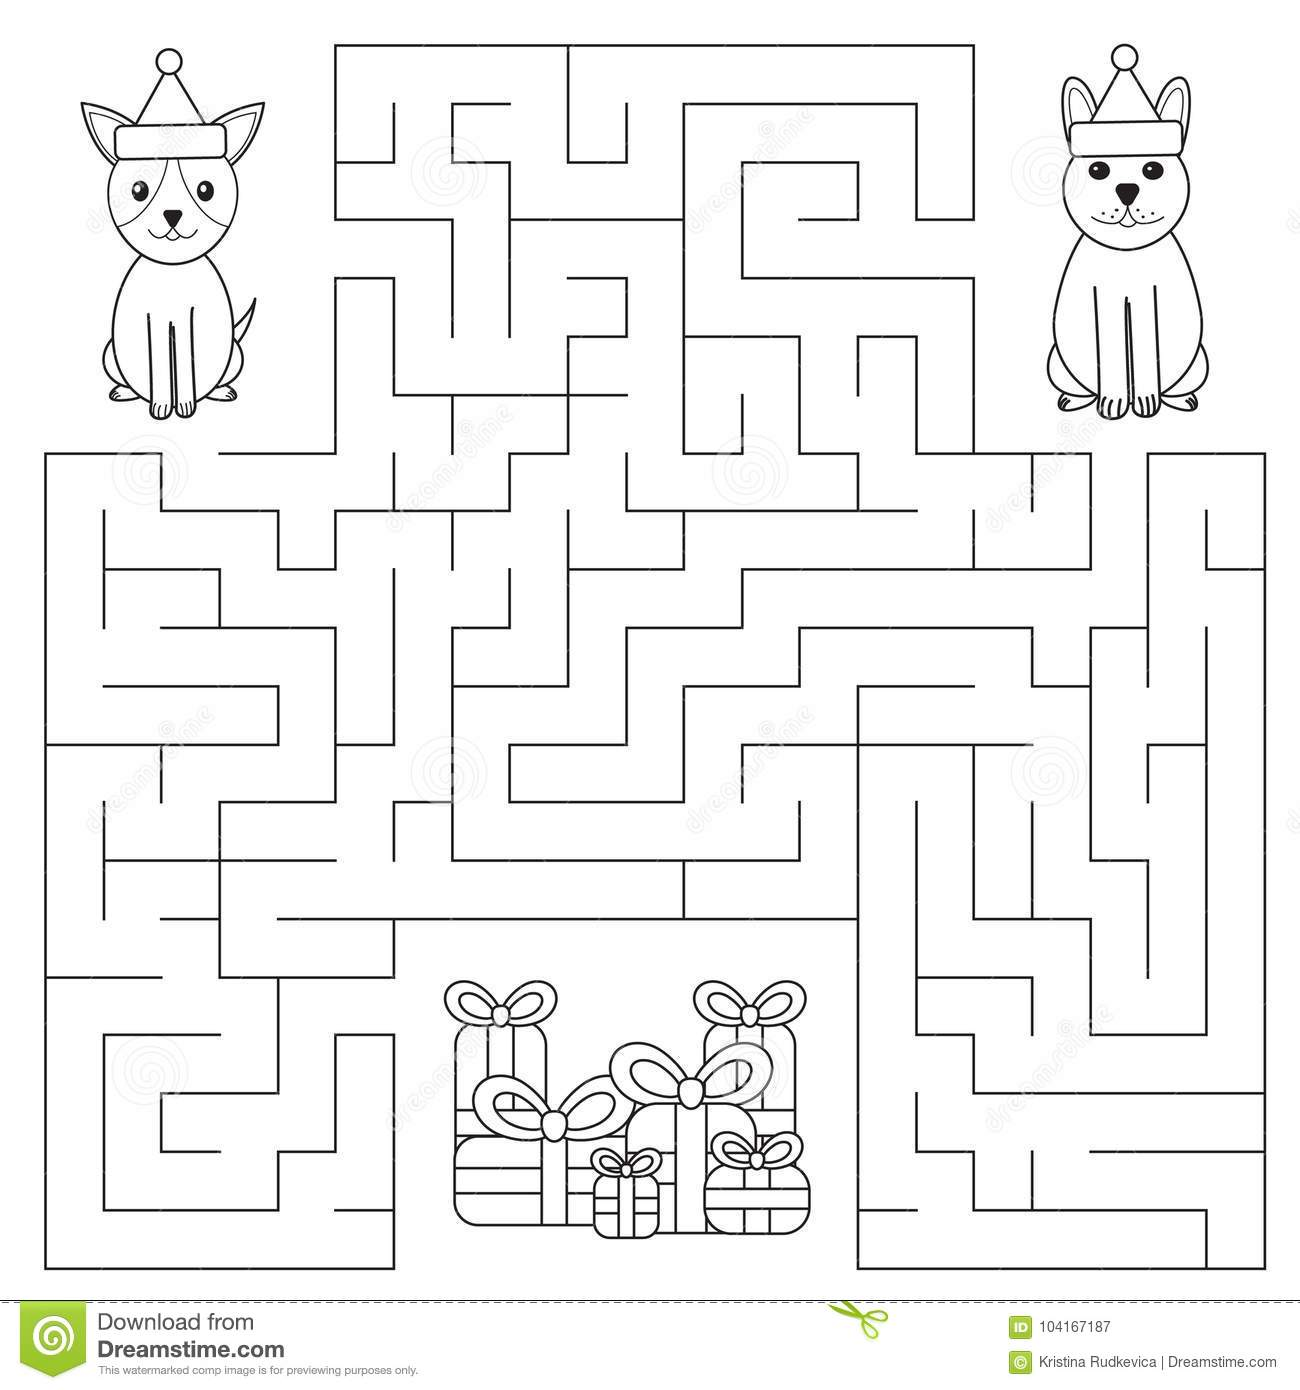 Christmas Maze Coloring Pages - GetColoringPages.com | 1390x1300